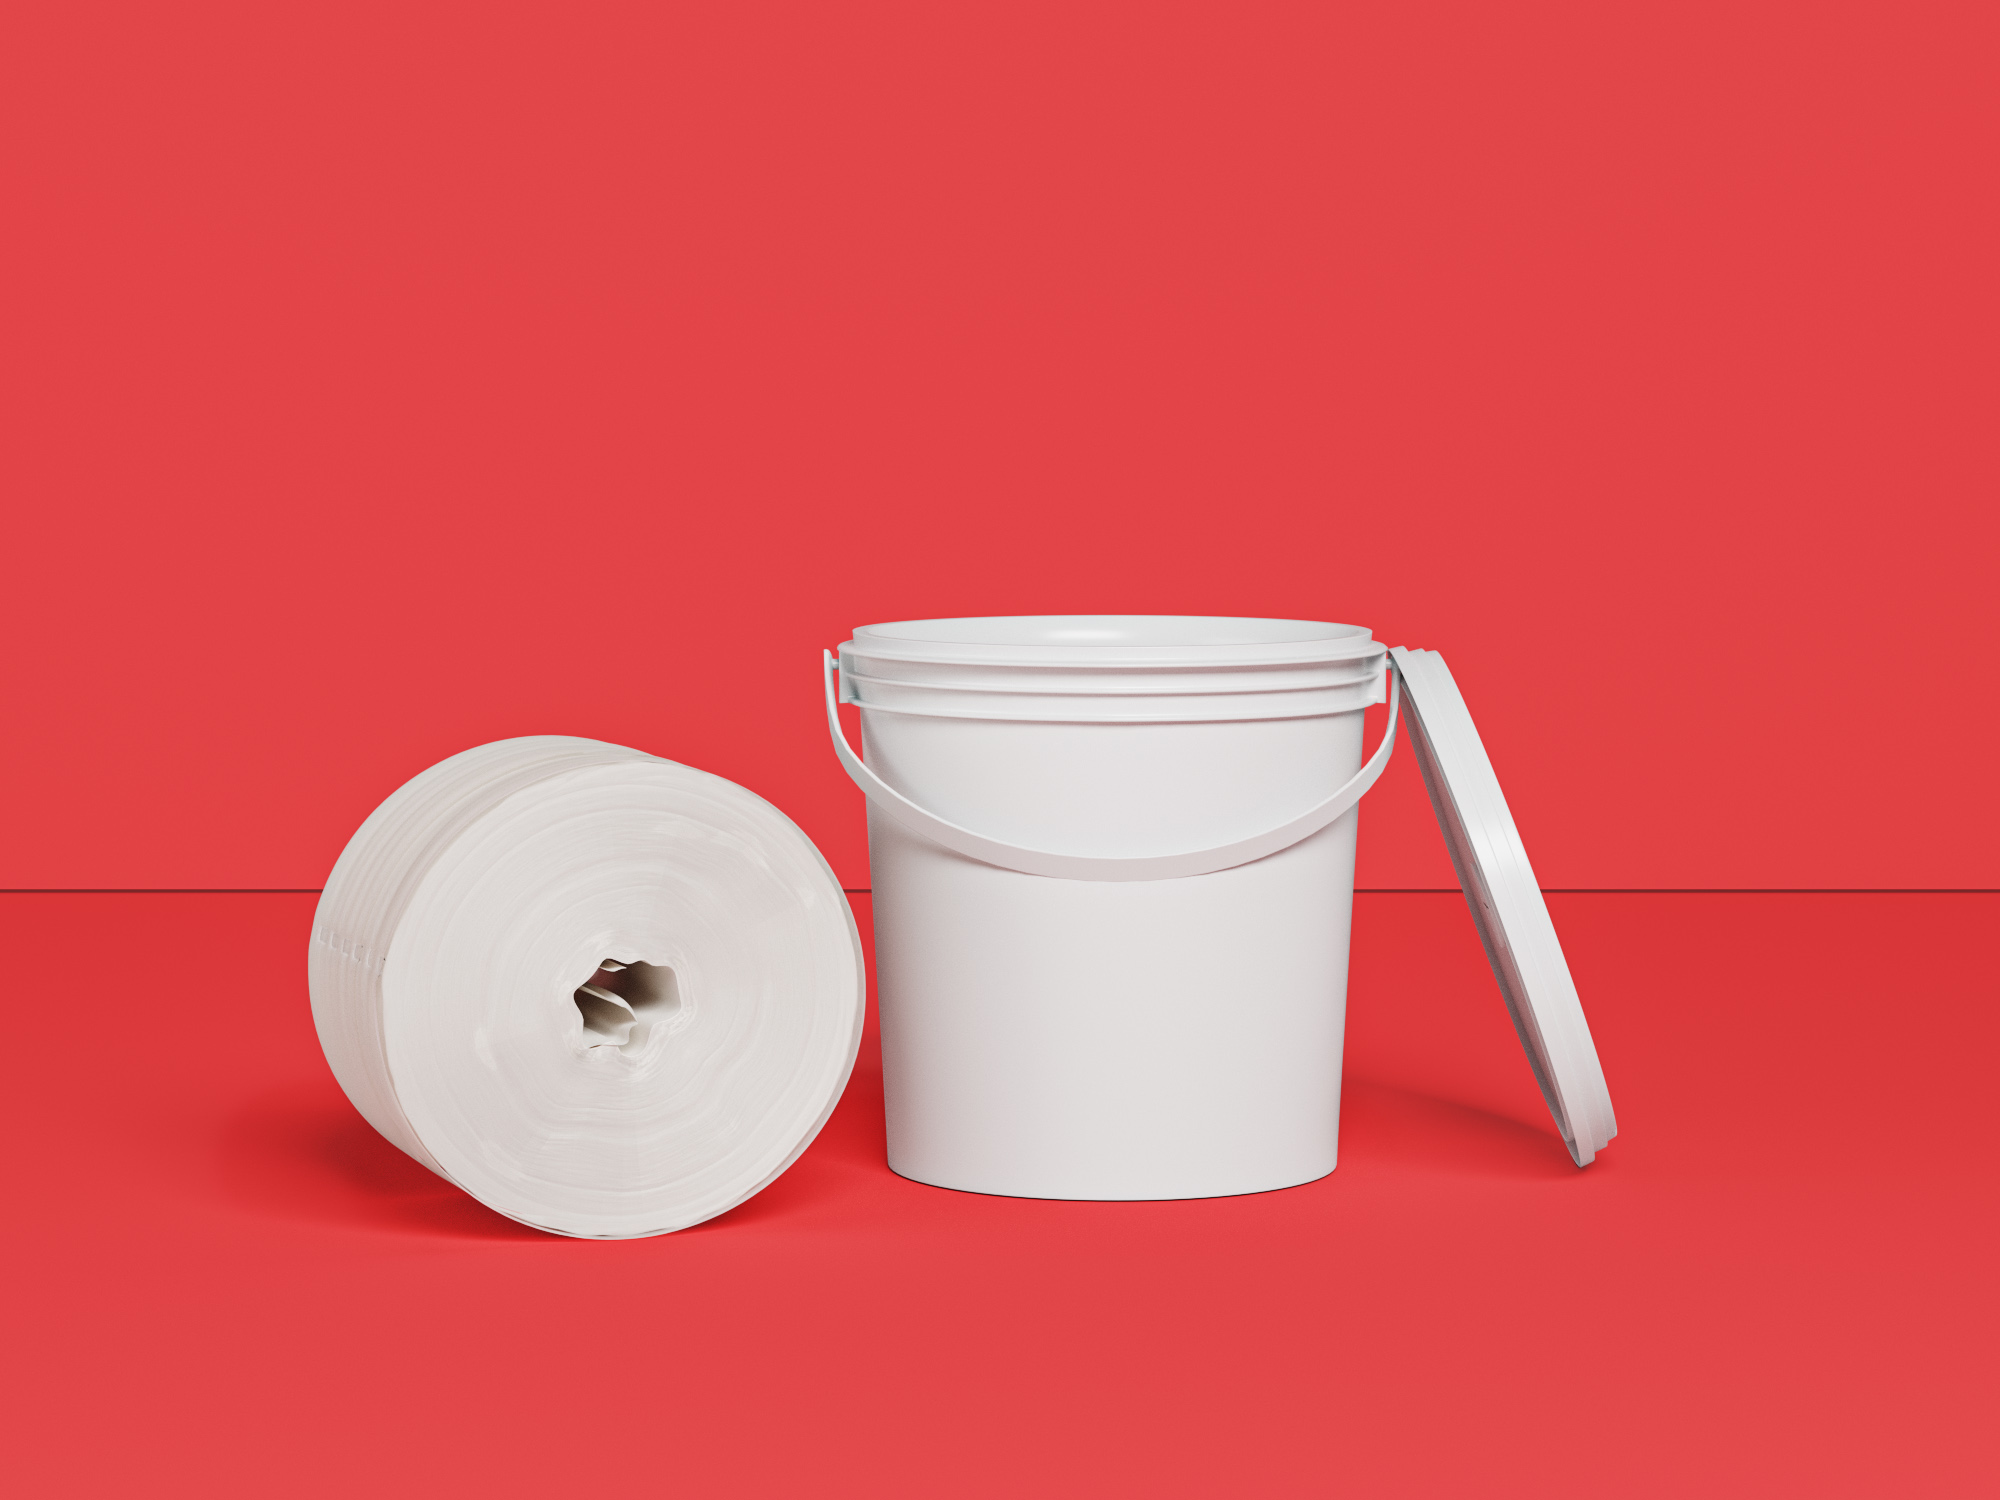 700Ct Dry Wipes Roll In Bucket